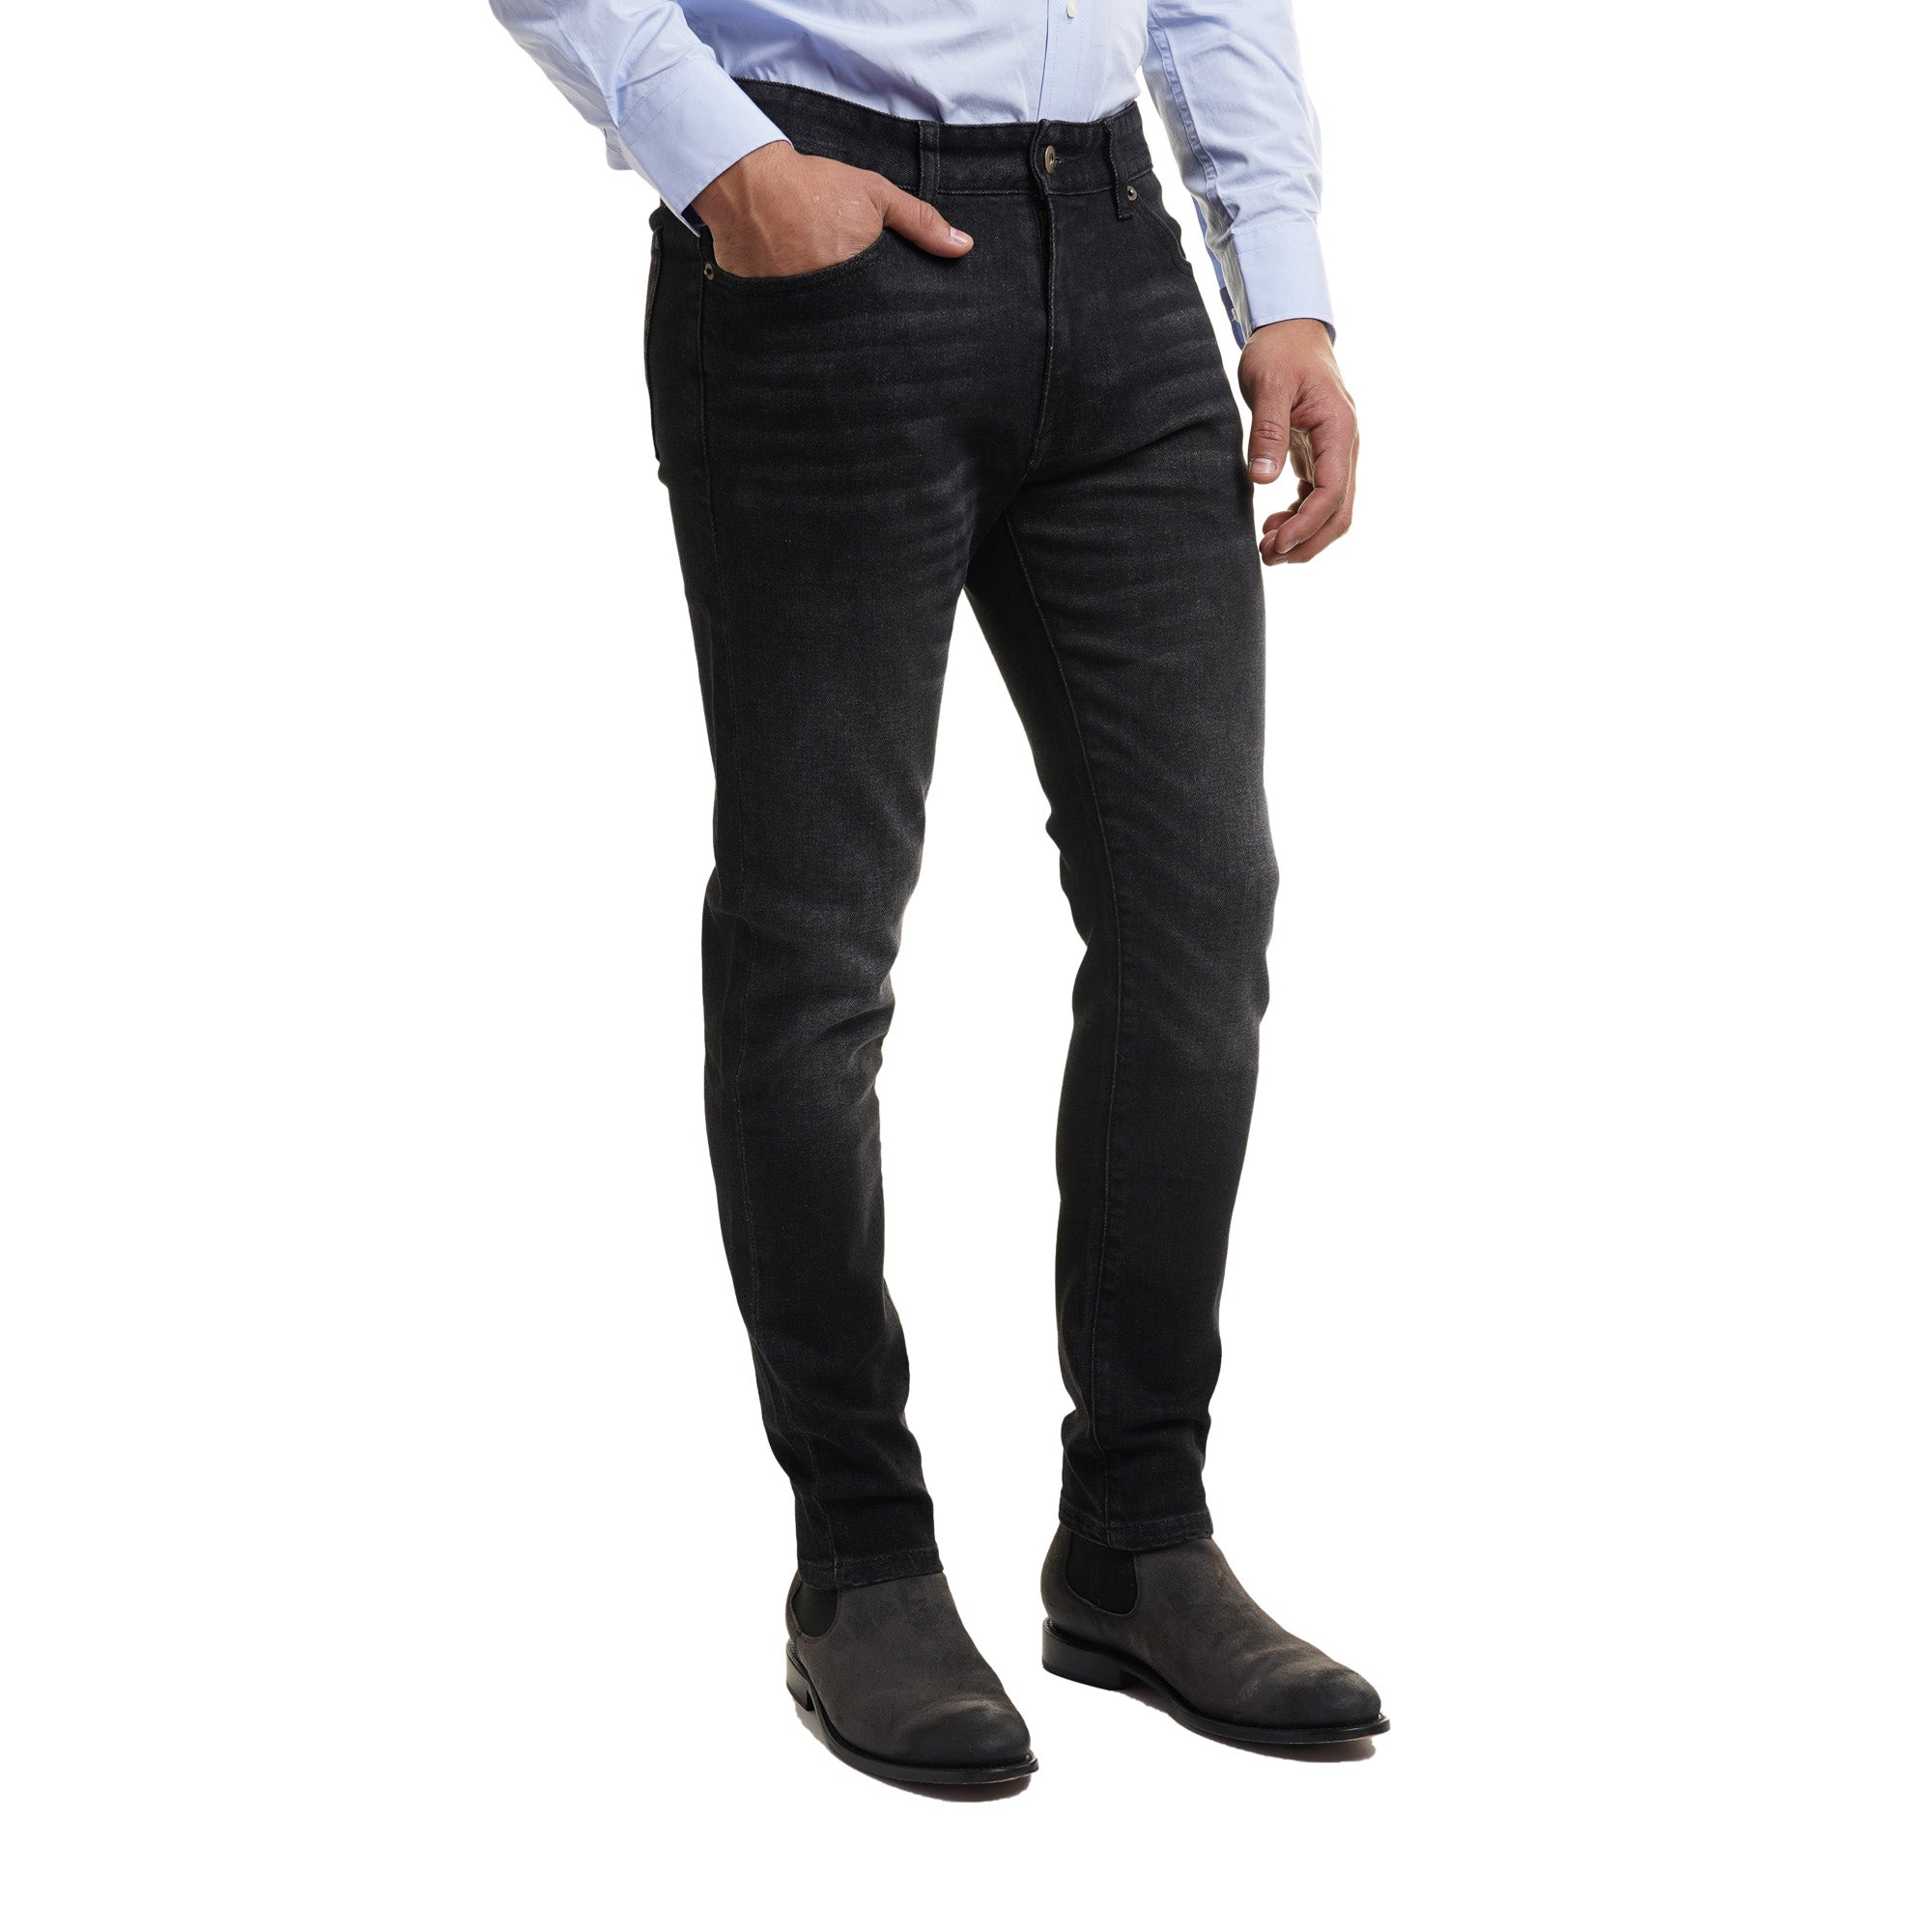 Johnny Stretch Jeans Slim Fit - Black